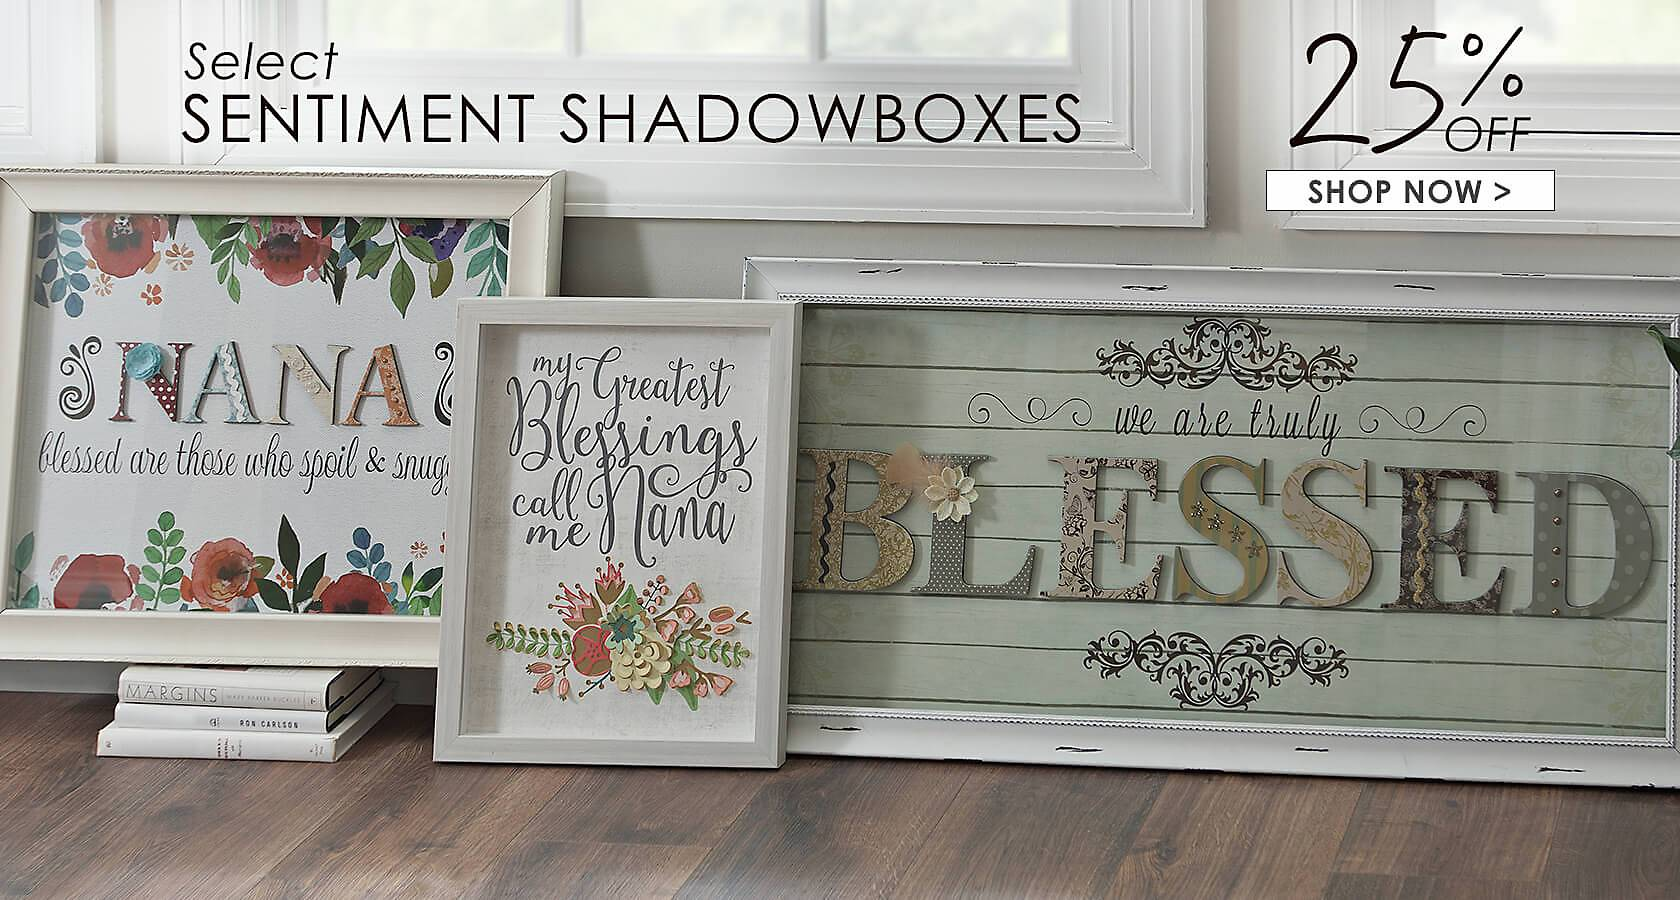 25% Off Select Sentiment Shadowboxes - Shop Now